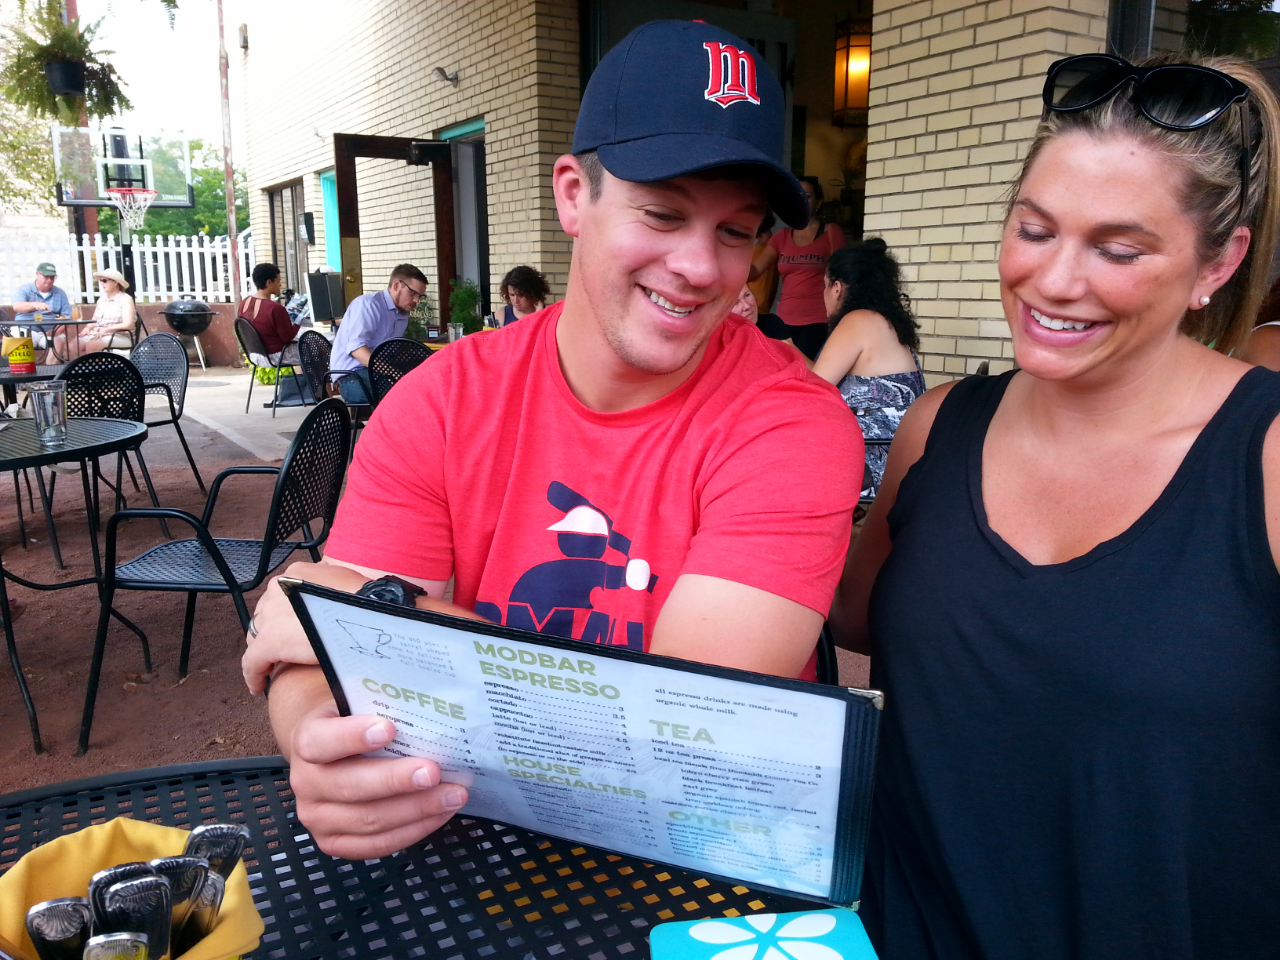 Newbies Josh Looney and Jenna Frankfurt discuss the to-die-for menu / photo by Michael Mackie